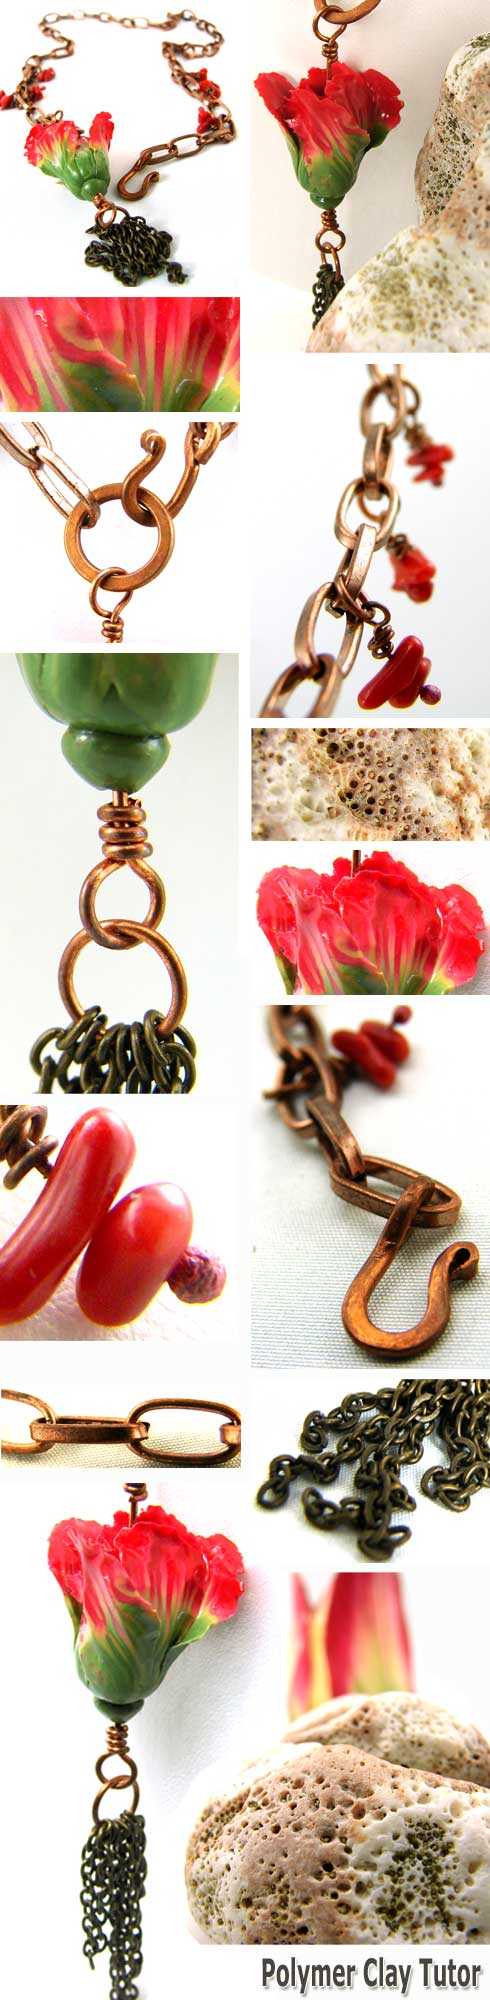 Parrot Tulip Tassel Necklace - Polymer Clay Tutor